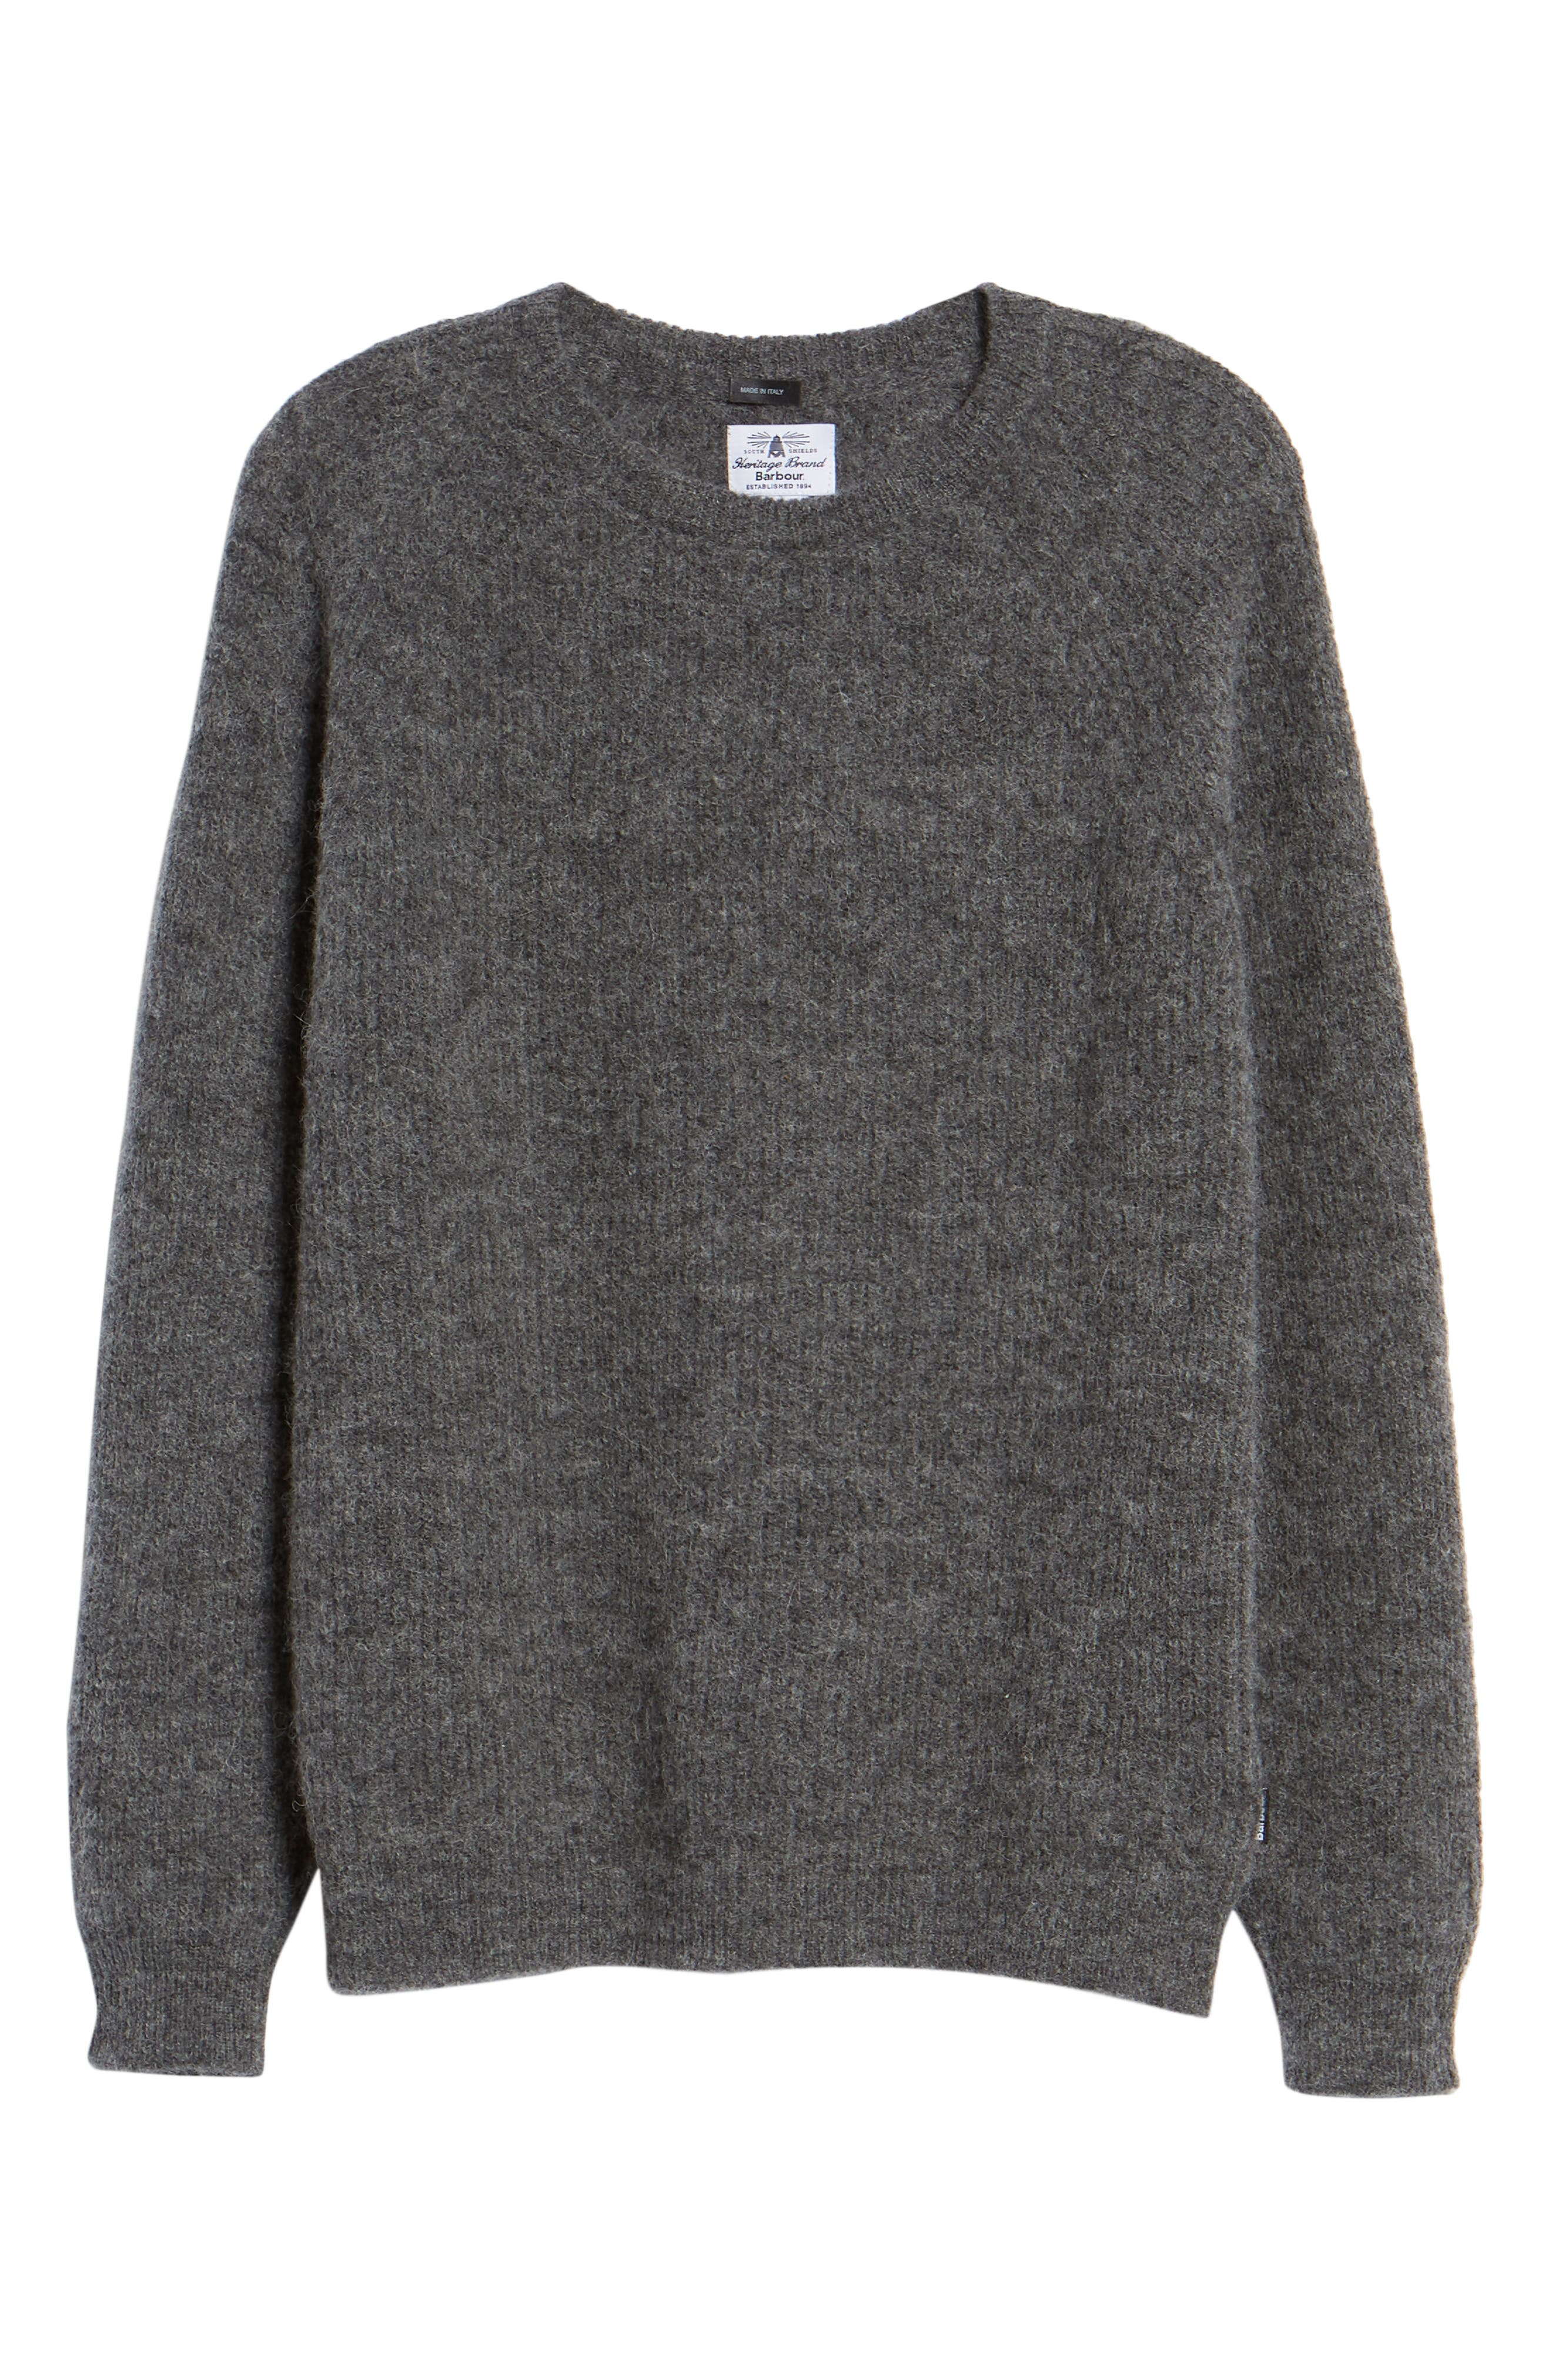 Olivia Crewneck Sweater,                             Alternate thumbnail 6, color,                             DARK GREY MARL